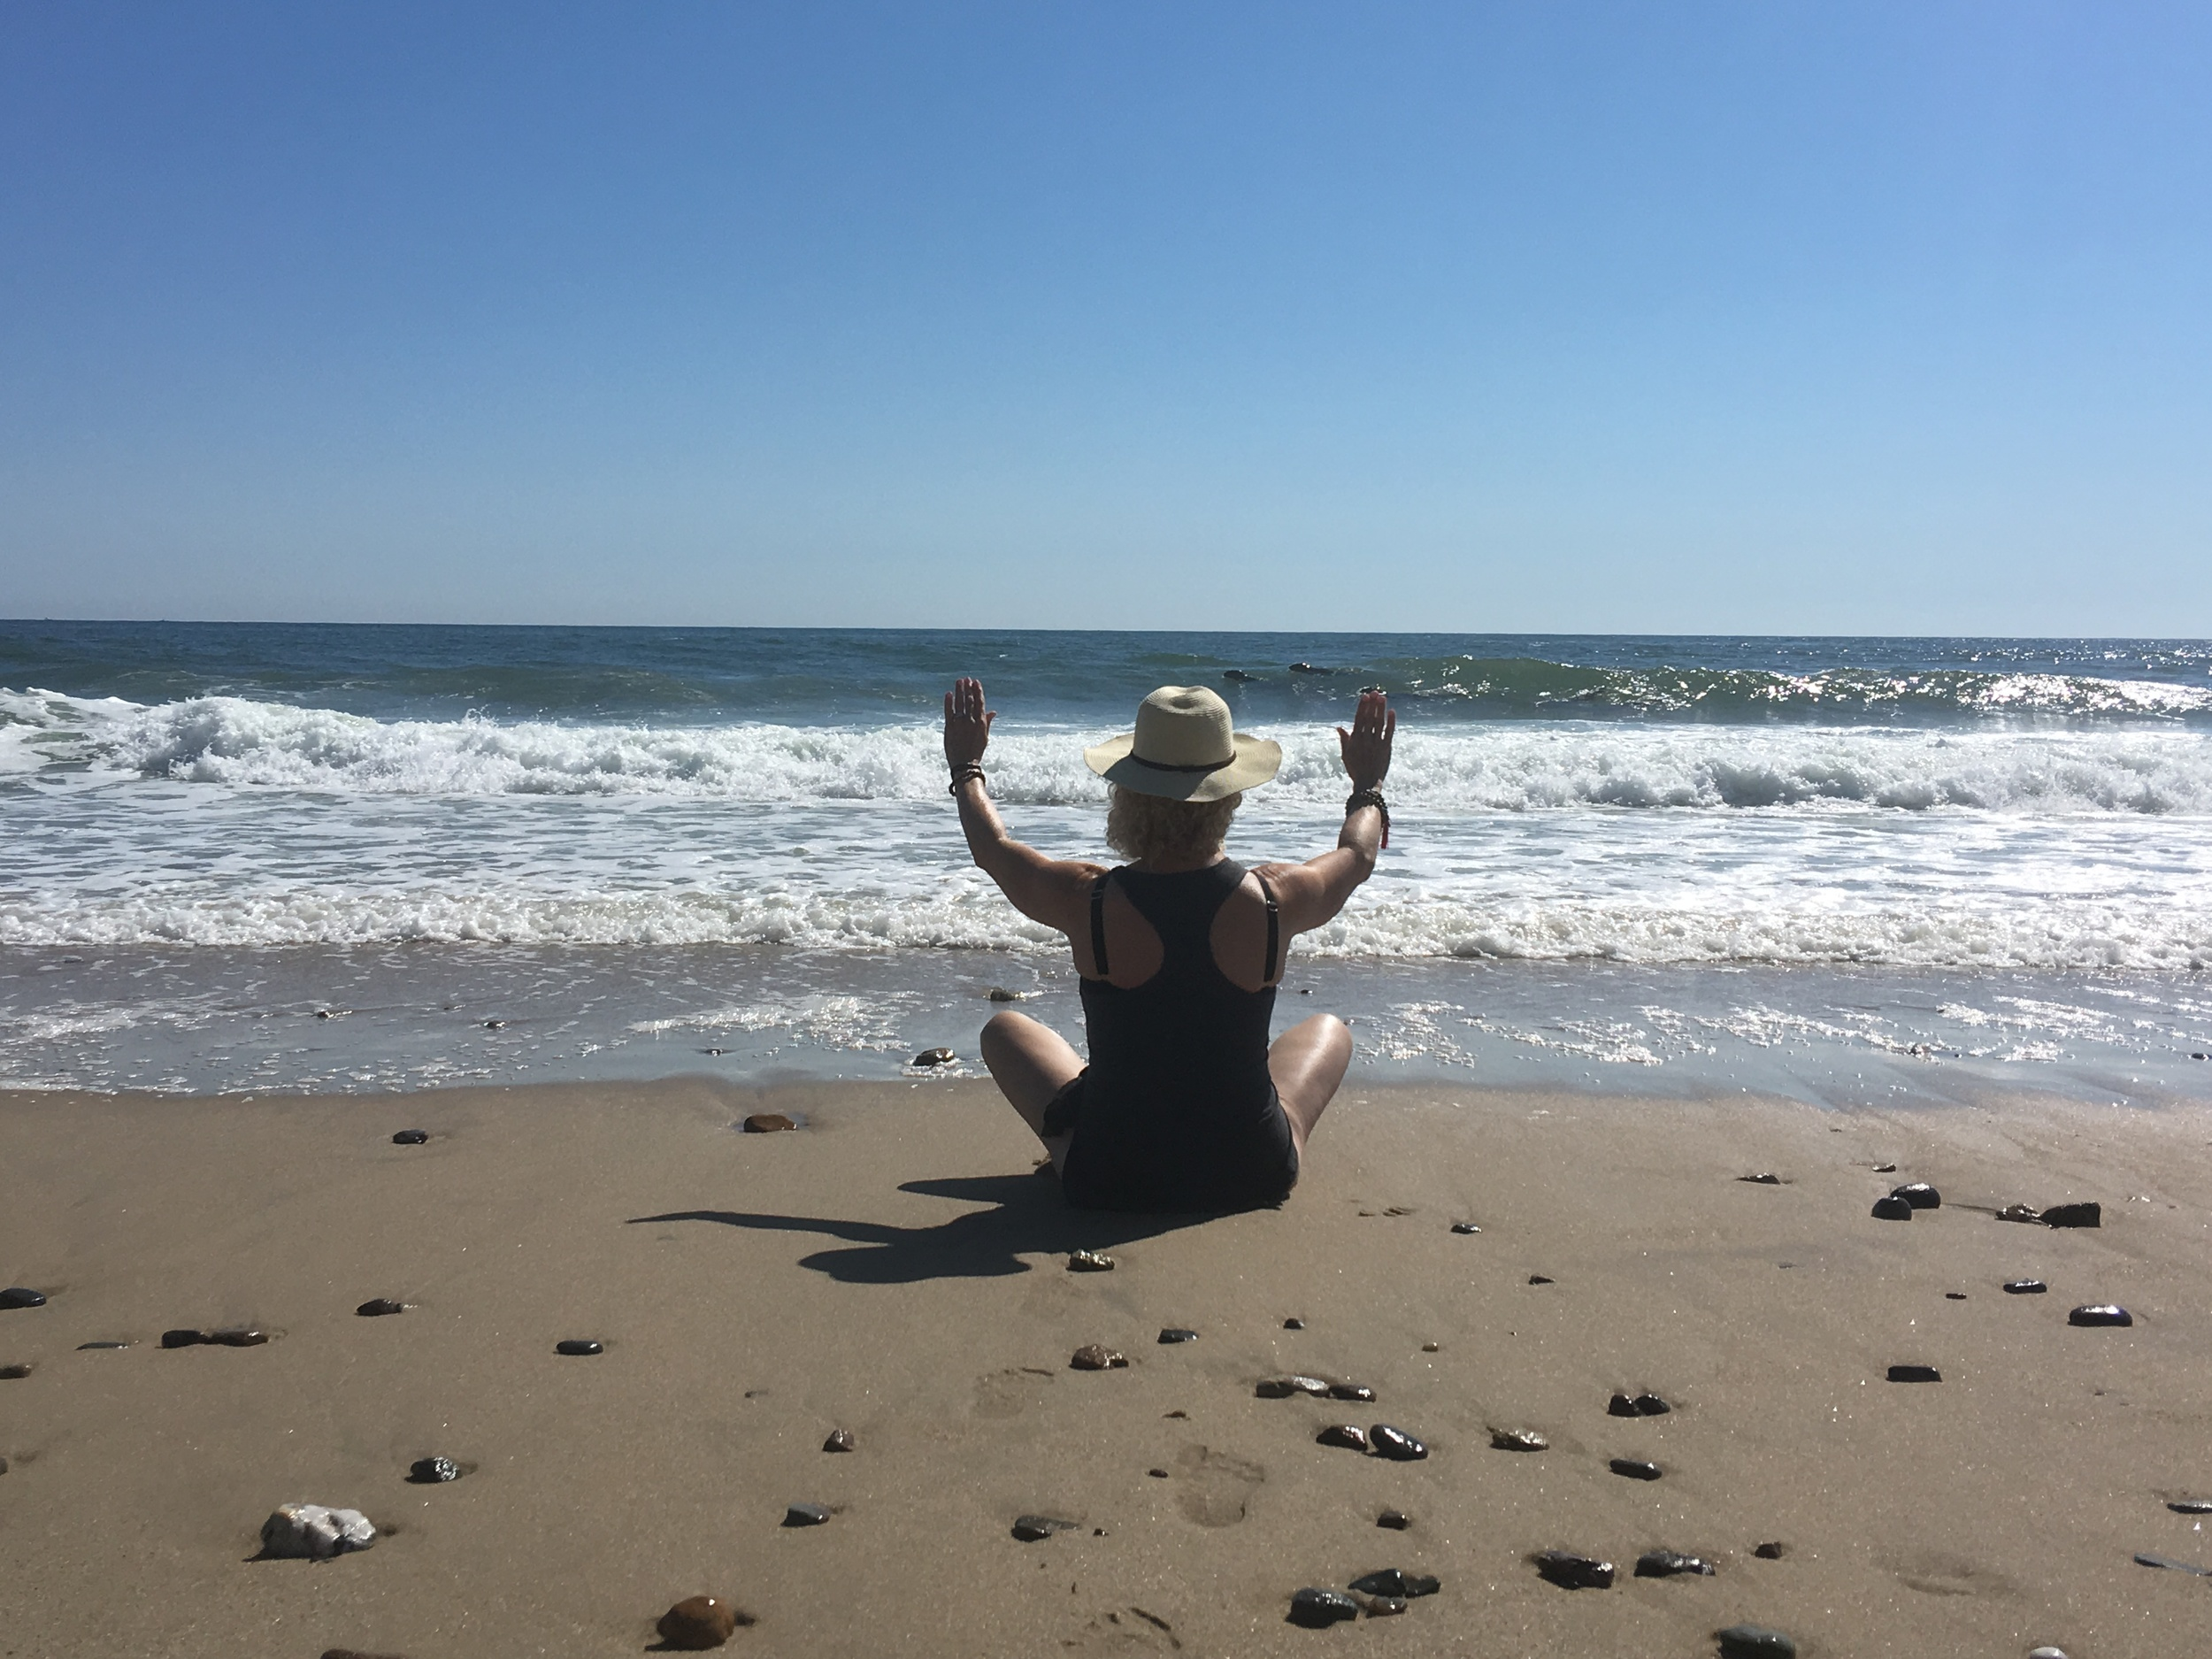 While visiting one of the beautiful beaches on the Cape this summer with my daughter, we learned that because of the growing seal population, the shark population is growing too. I decided one morning to send Reiki out to the ocean, to bless the Cape seals and protect them from the sharks. How exciting it was for me, when two seals appeared in the surf and hung out for a little while, to soak up the Reiki Rays!